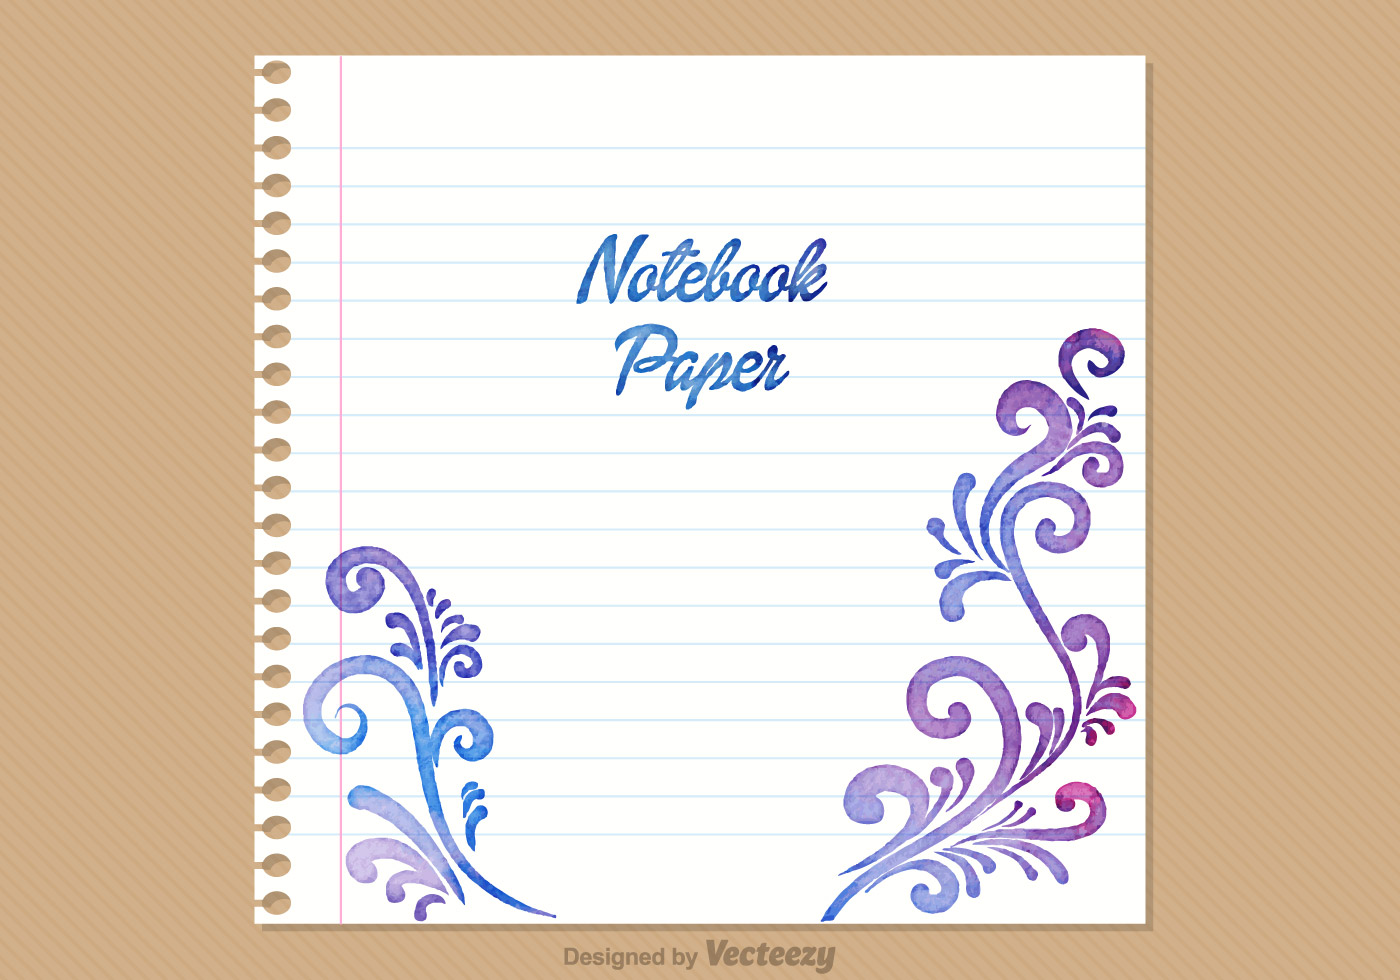 torn notebook paper free vector art - (8141 free downloads)